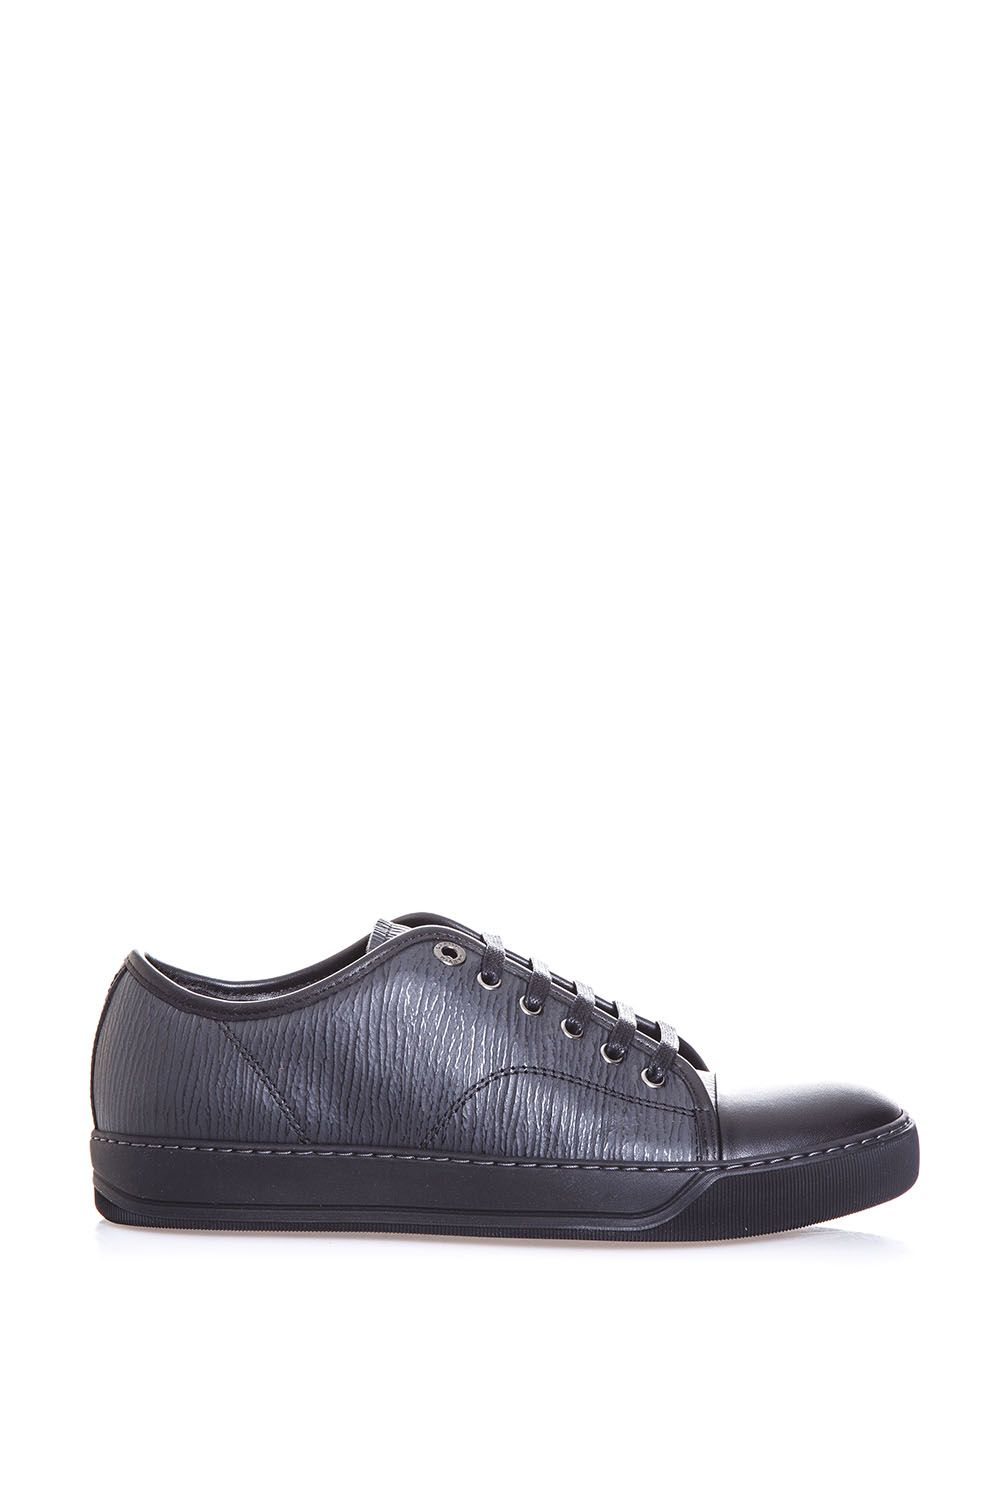 Lanvin Low Sneakers